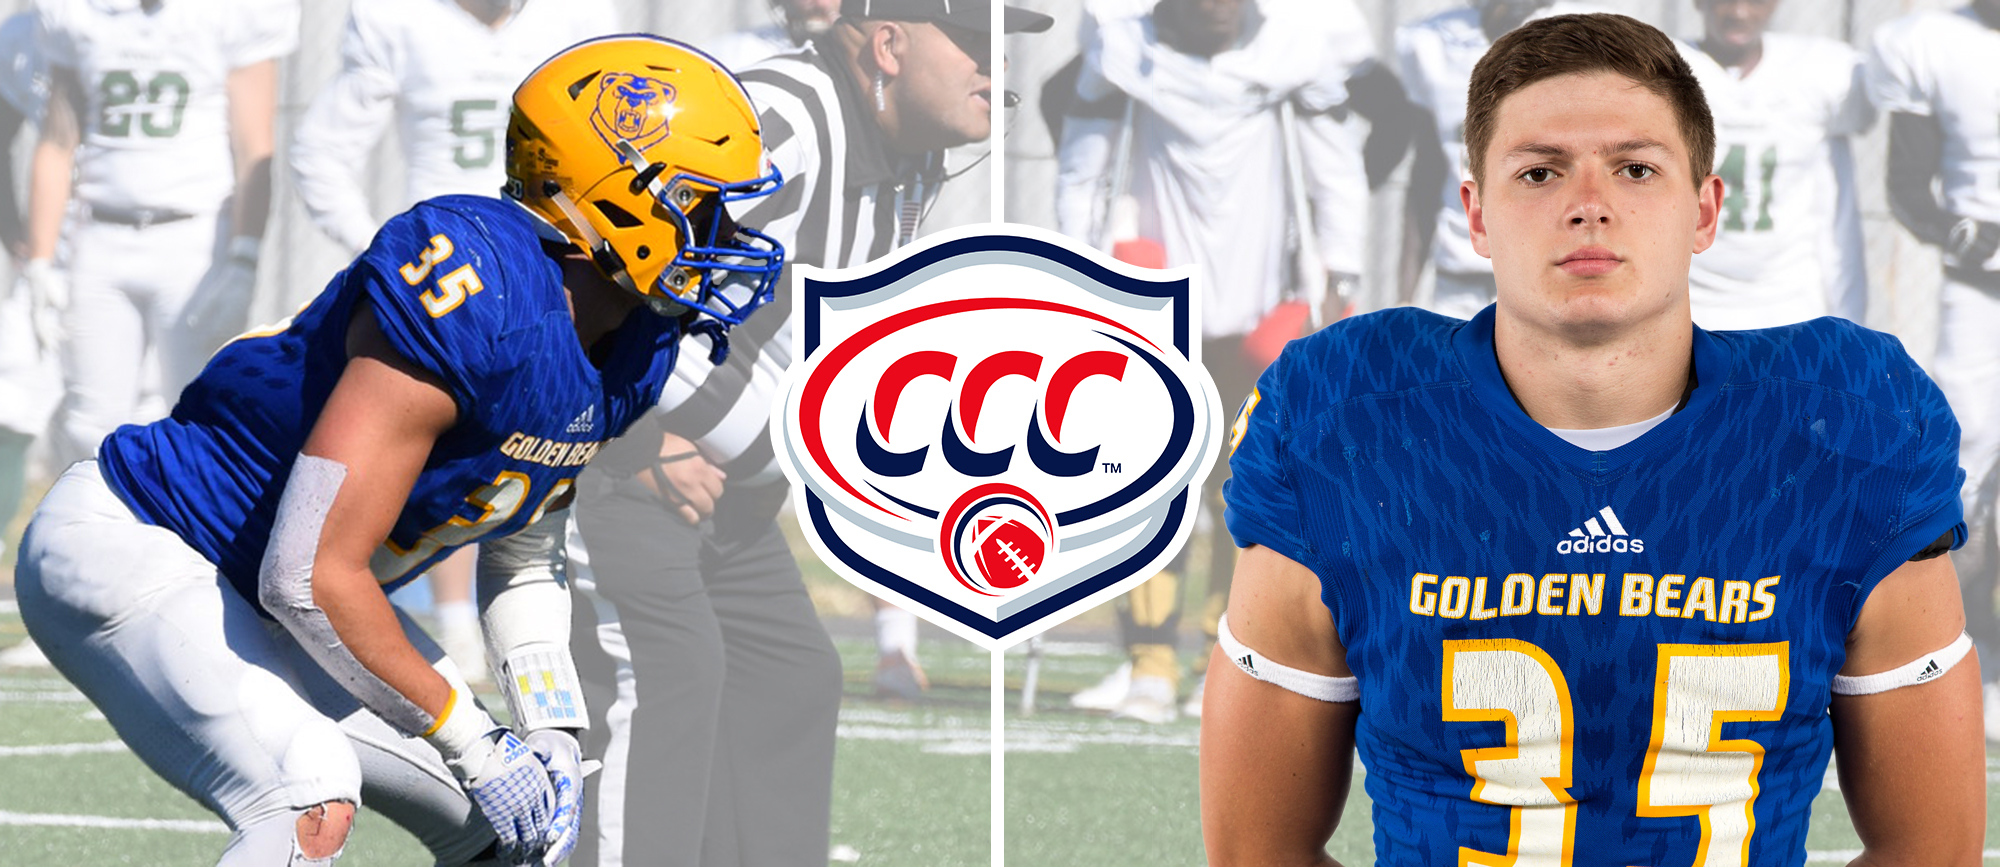 Erich Keutmann Named CCC Football Defensive Player of the Week